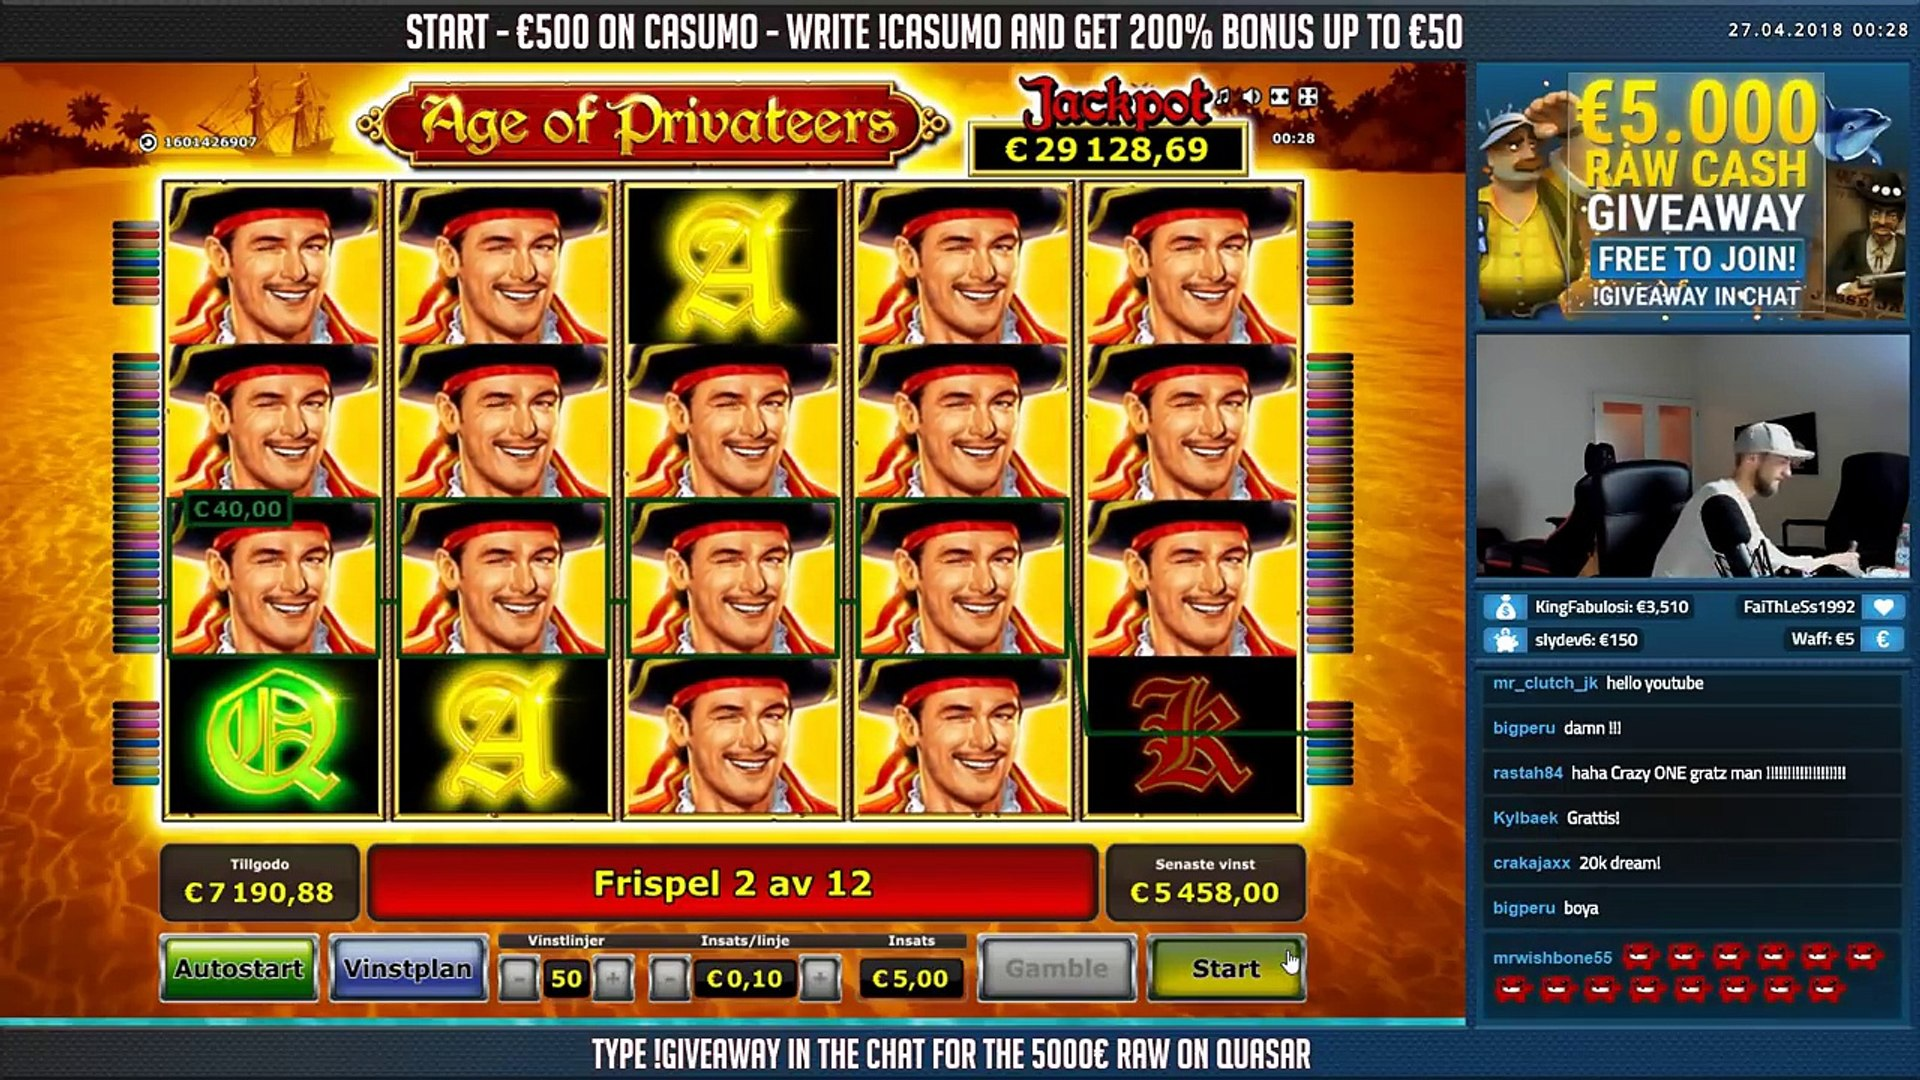 RECORD WIN!!! Age of Privateers Big win - Casino Games - Online slots - Huge Win